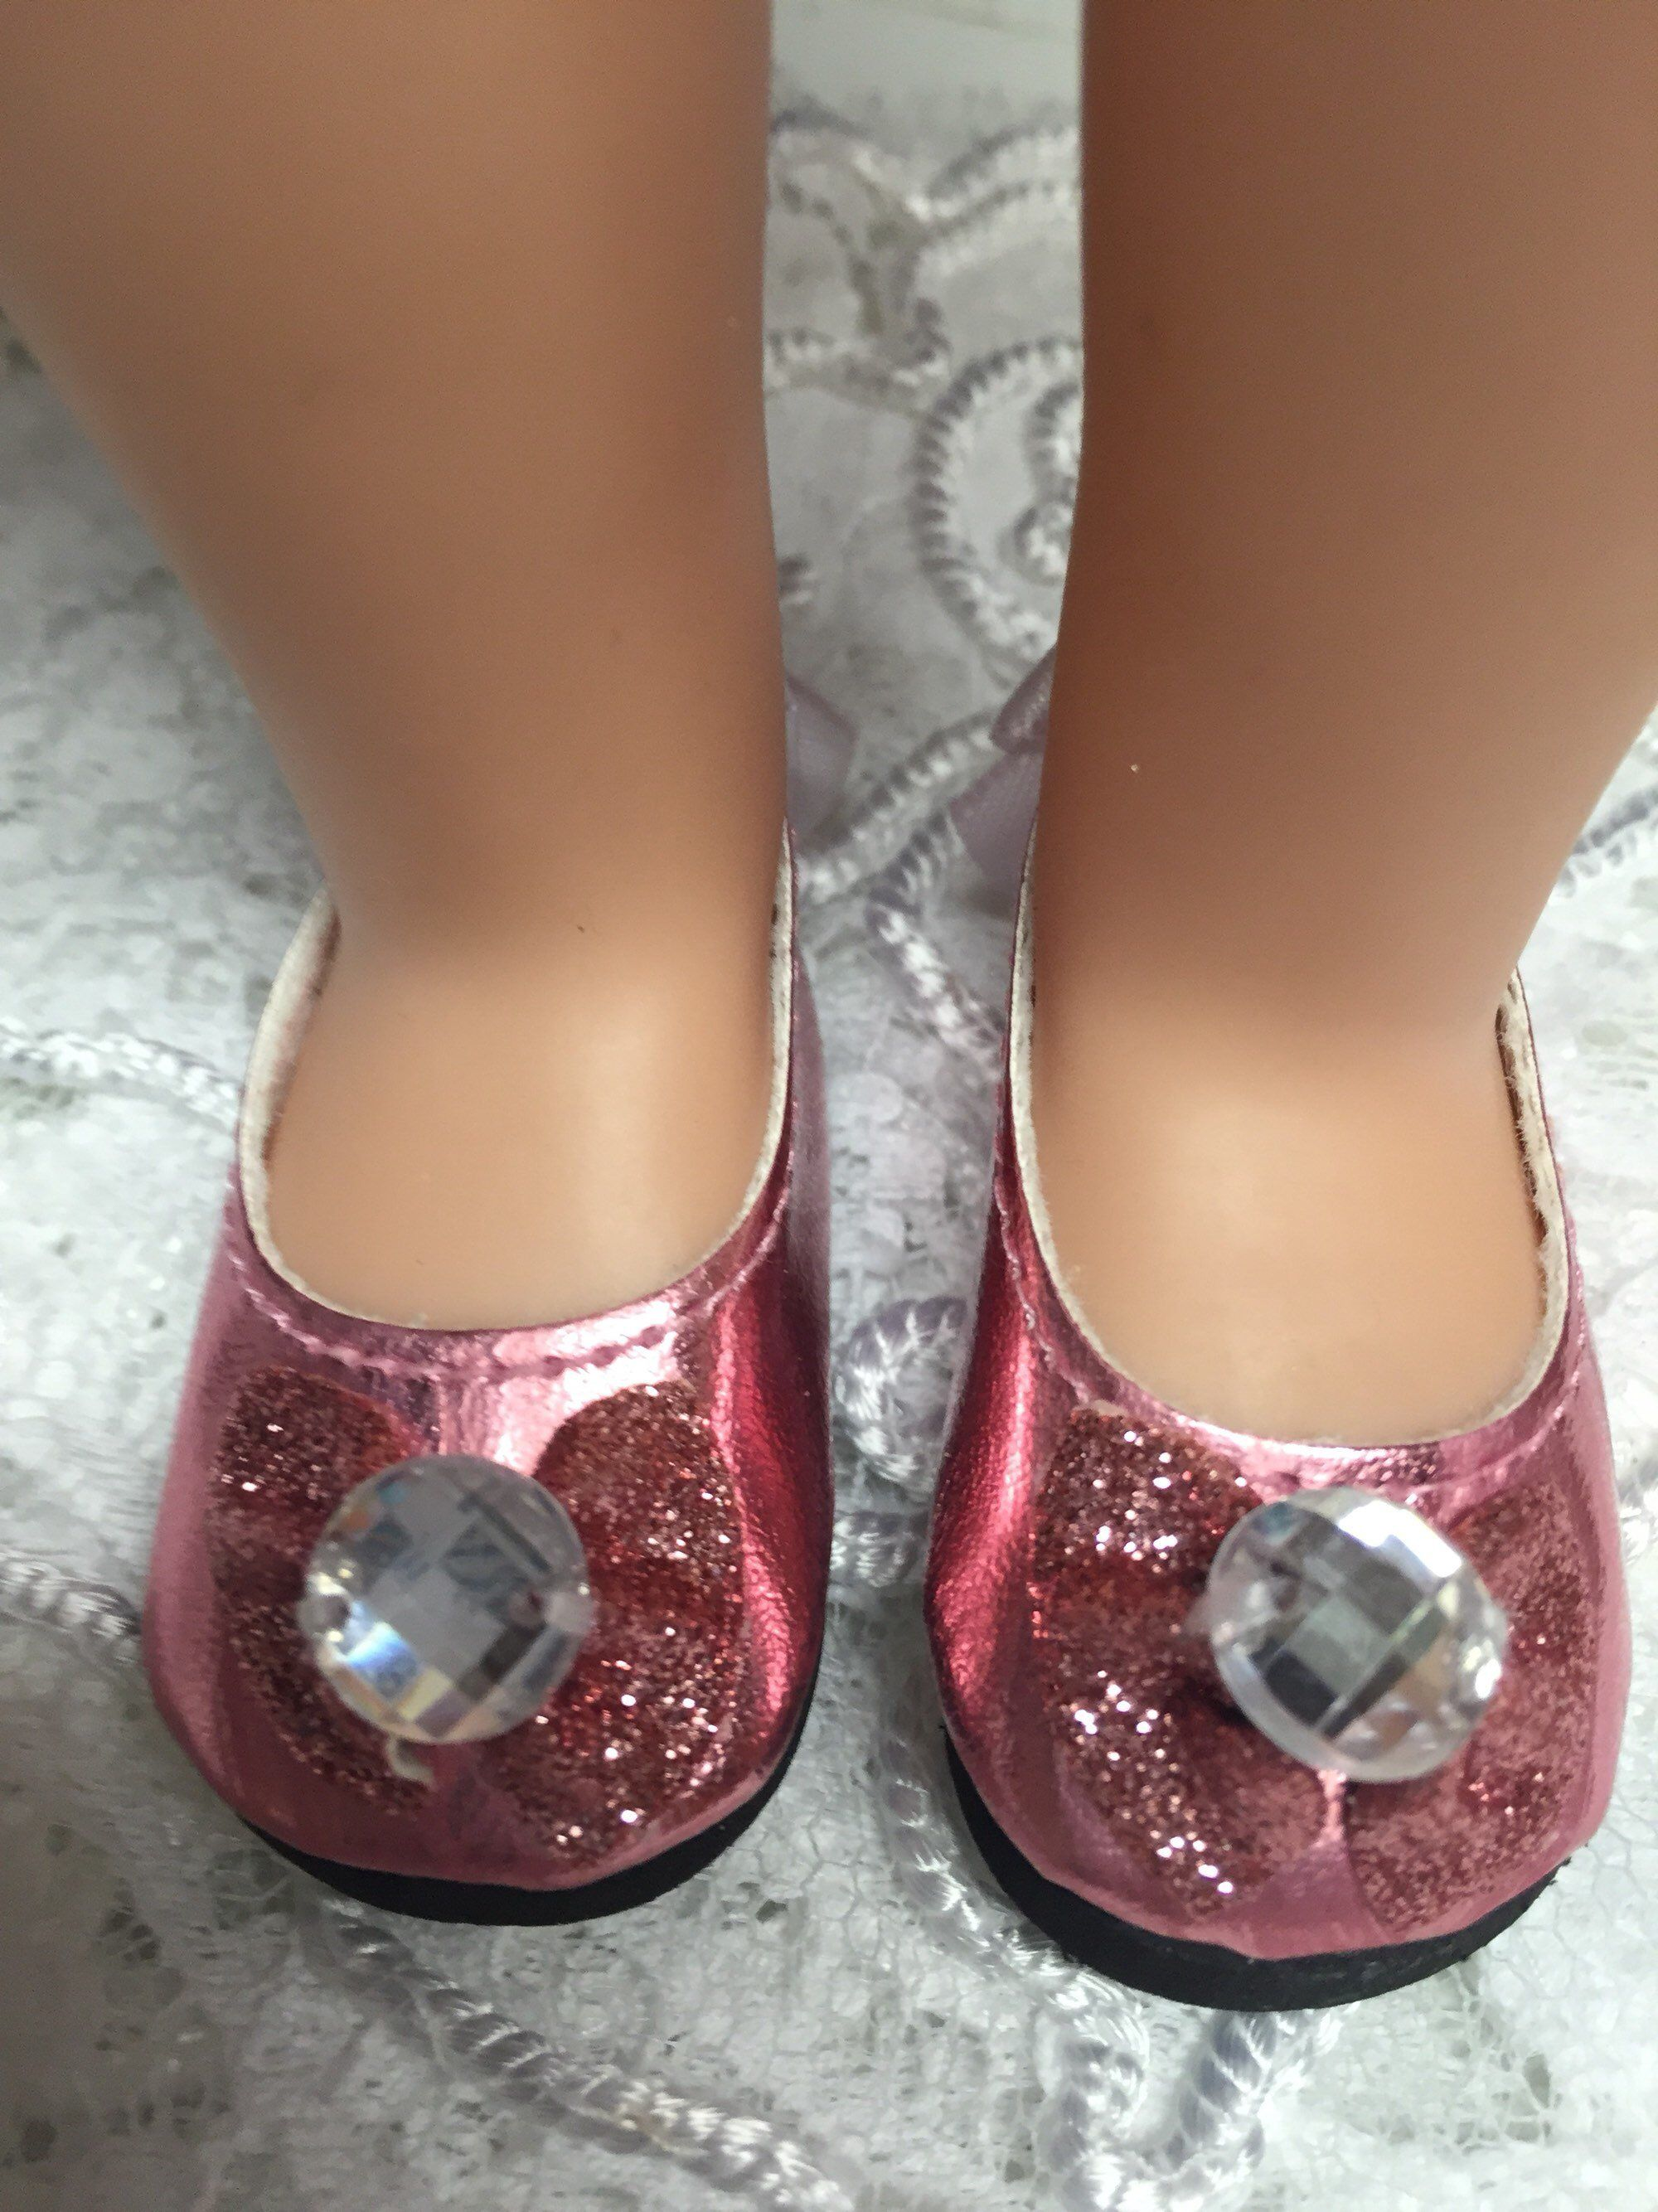 b5a13f2d750f Excited to share the latest addition to my #etsy shop: Wellie wishers shoes  for dolls gemstone and bows flats pink roses handmade by BeDollying 14.5  inch ...